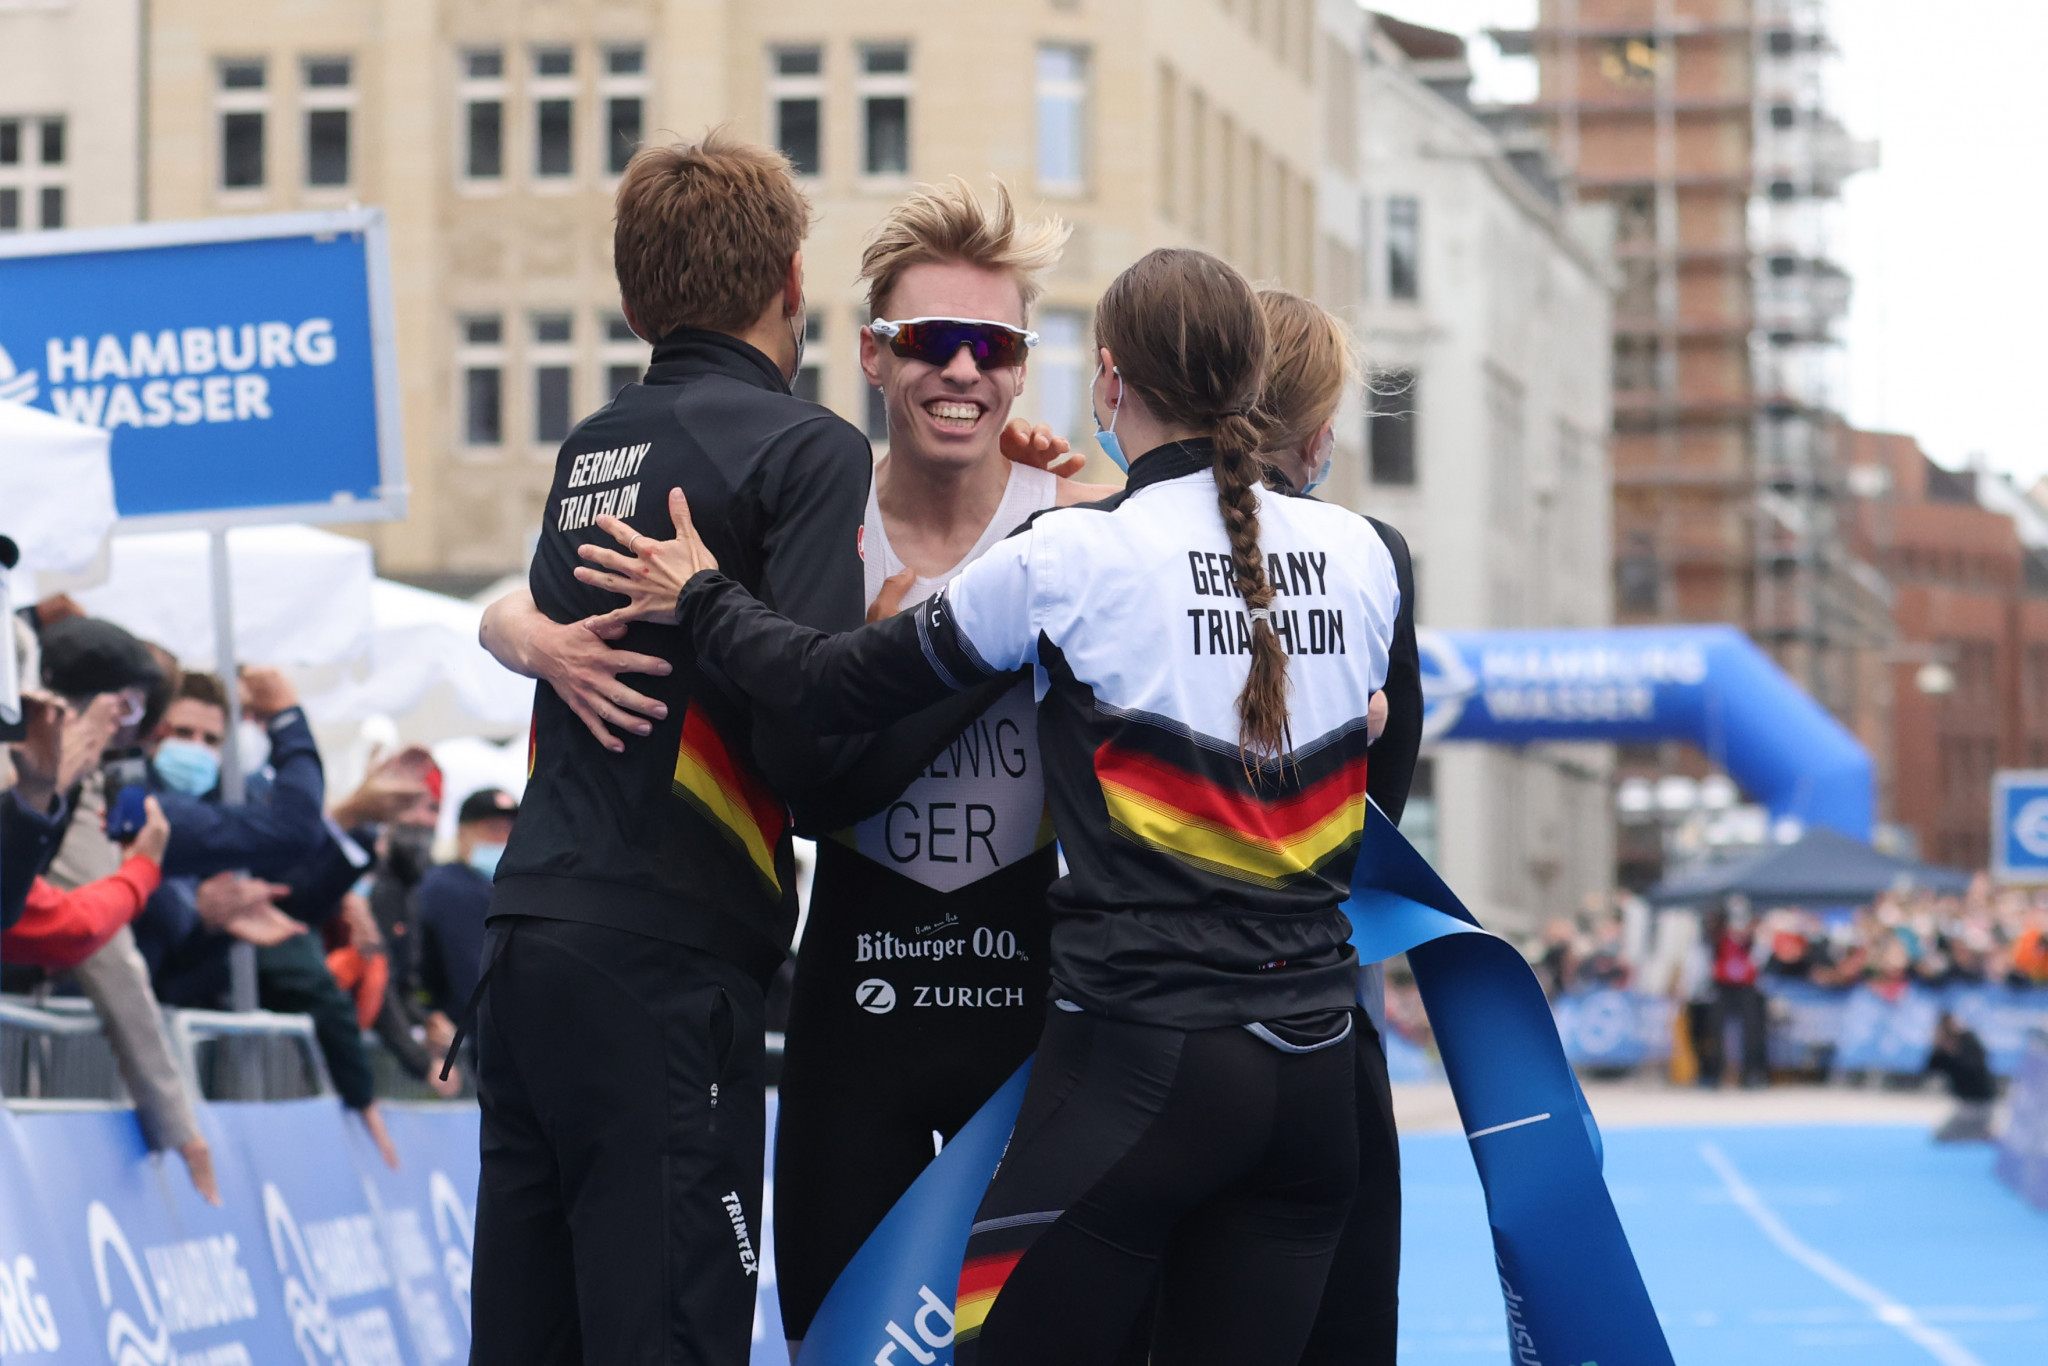 Germany win mixed team relay to complete World Triathlon Championship Series hat-trick